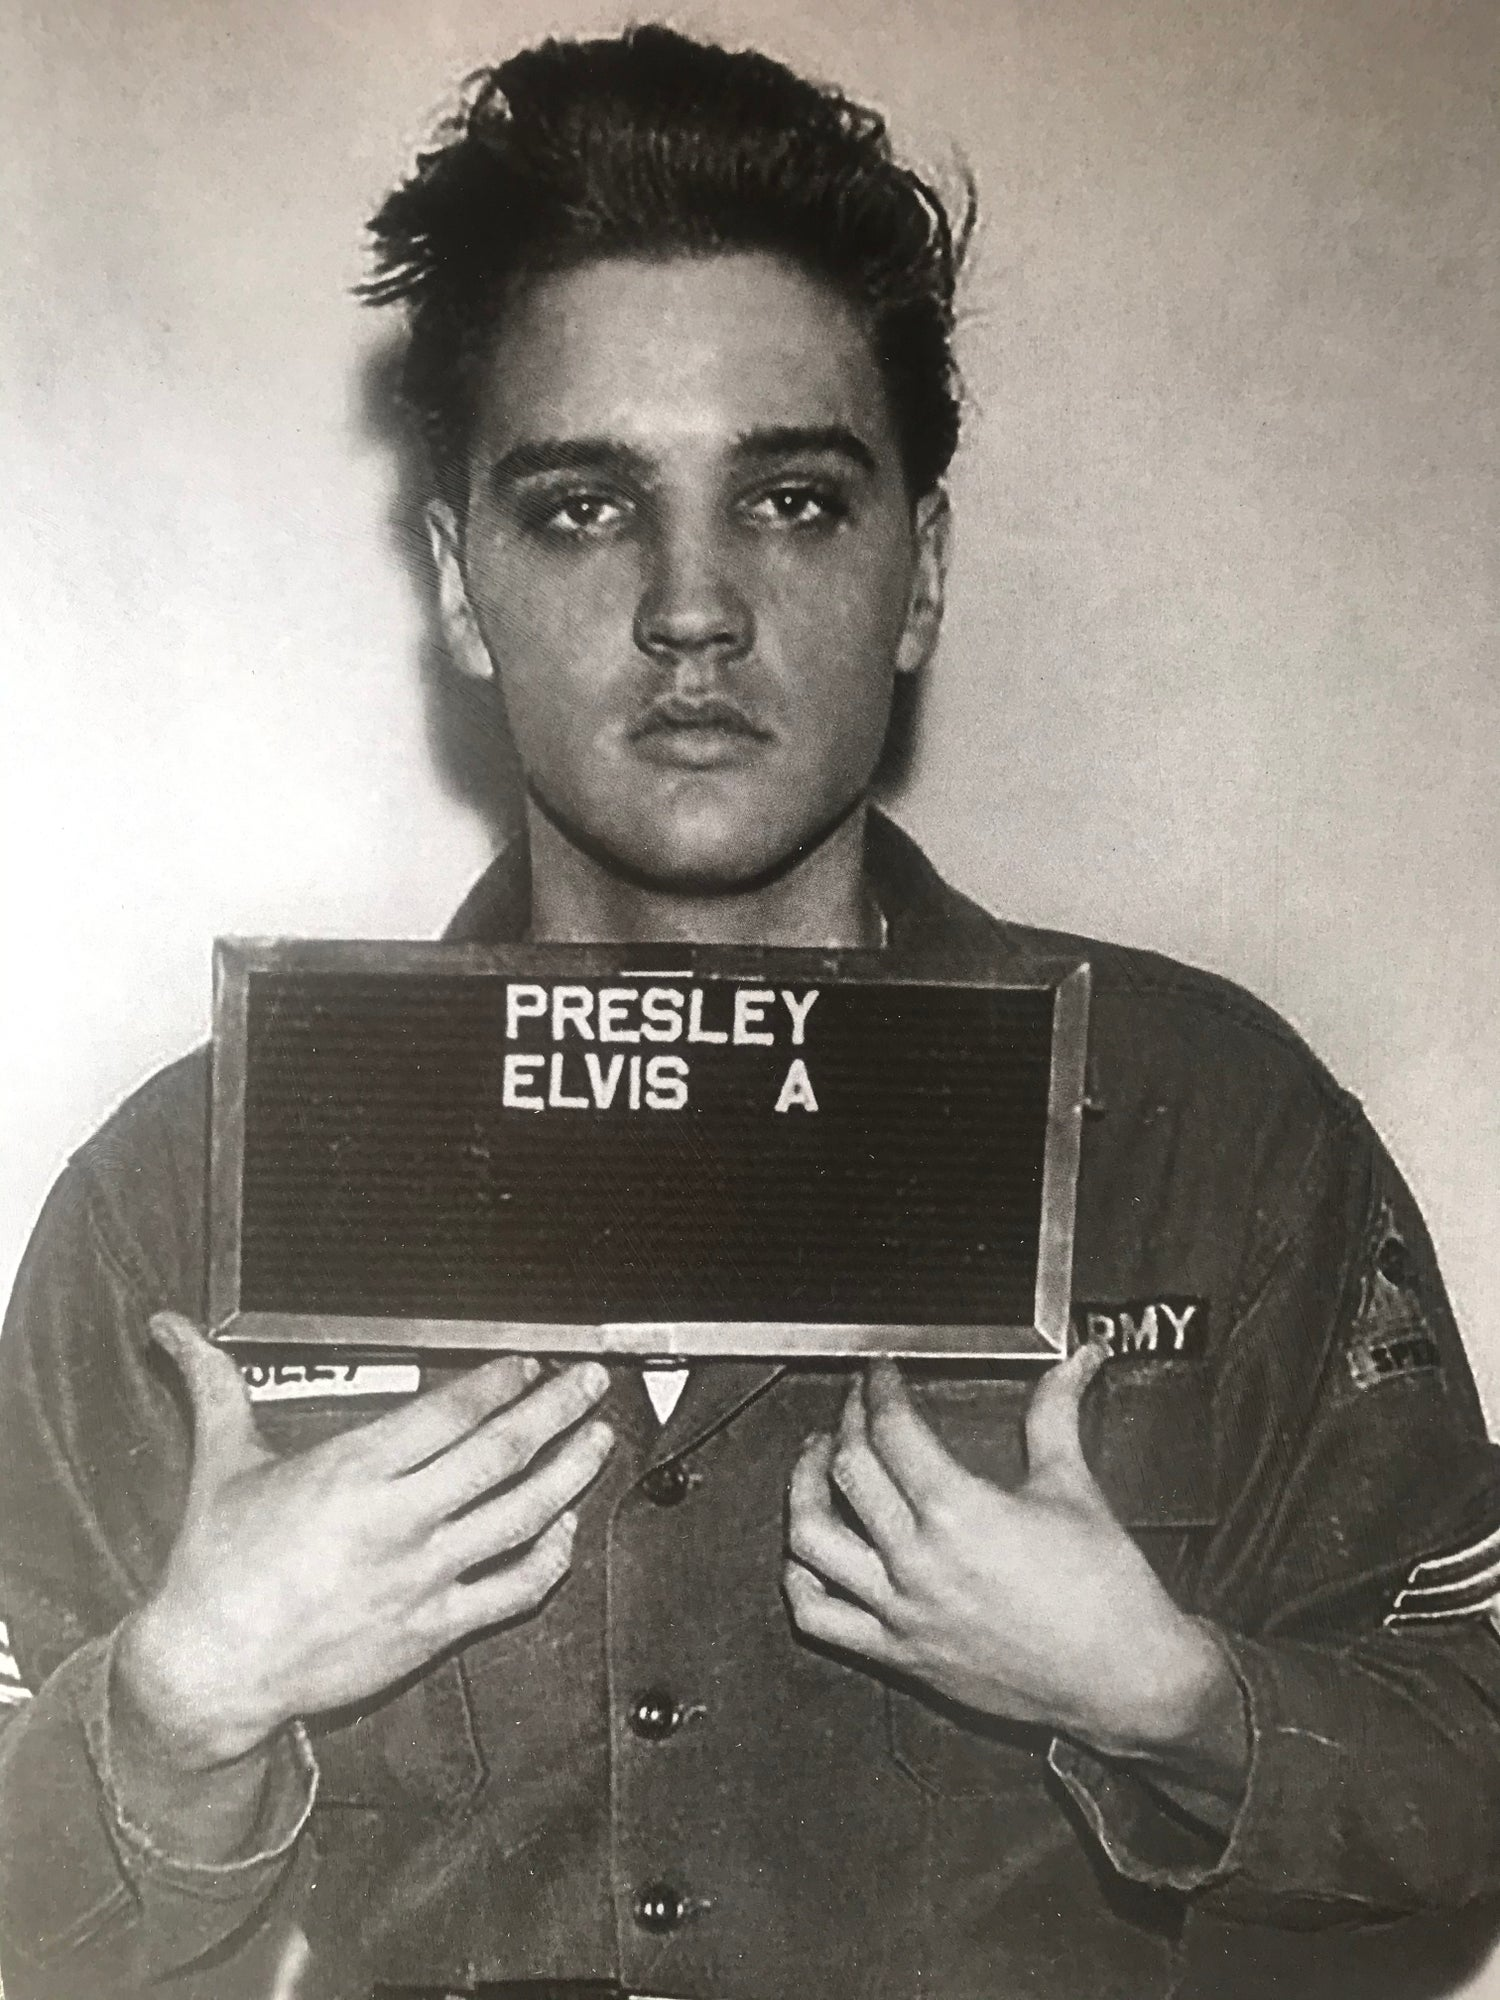 Image of Elvis Presley